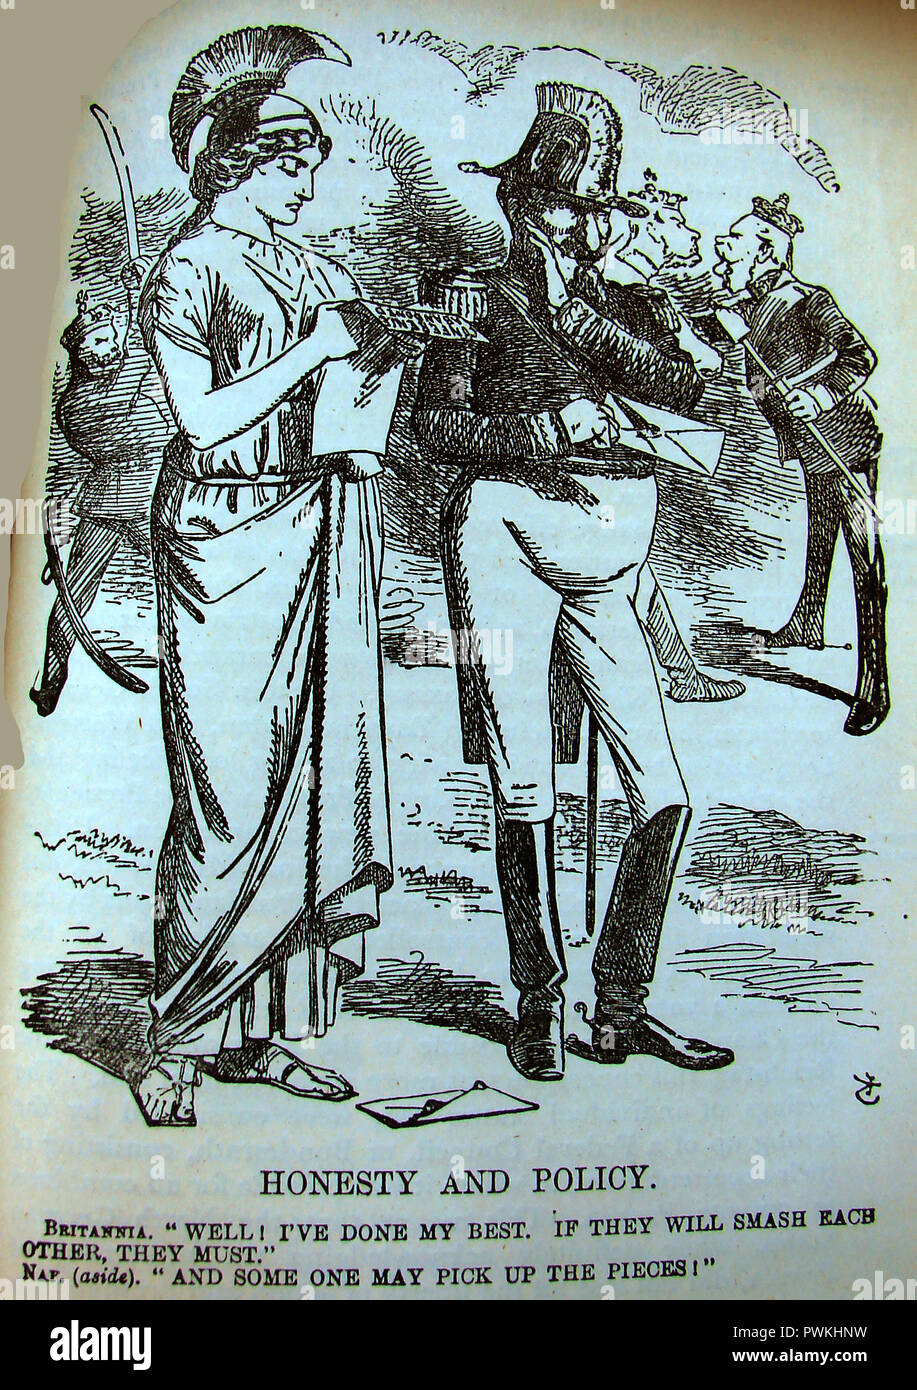 Victorian political cartoon relating to the Austro-Prussian War (Seven Weeks War or Fraternal War) showing Britannia (Britain) and Napoleon who was seeking 'rich pickings' from the conflict - Stock Image